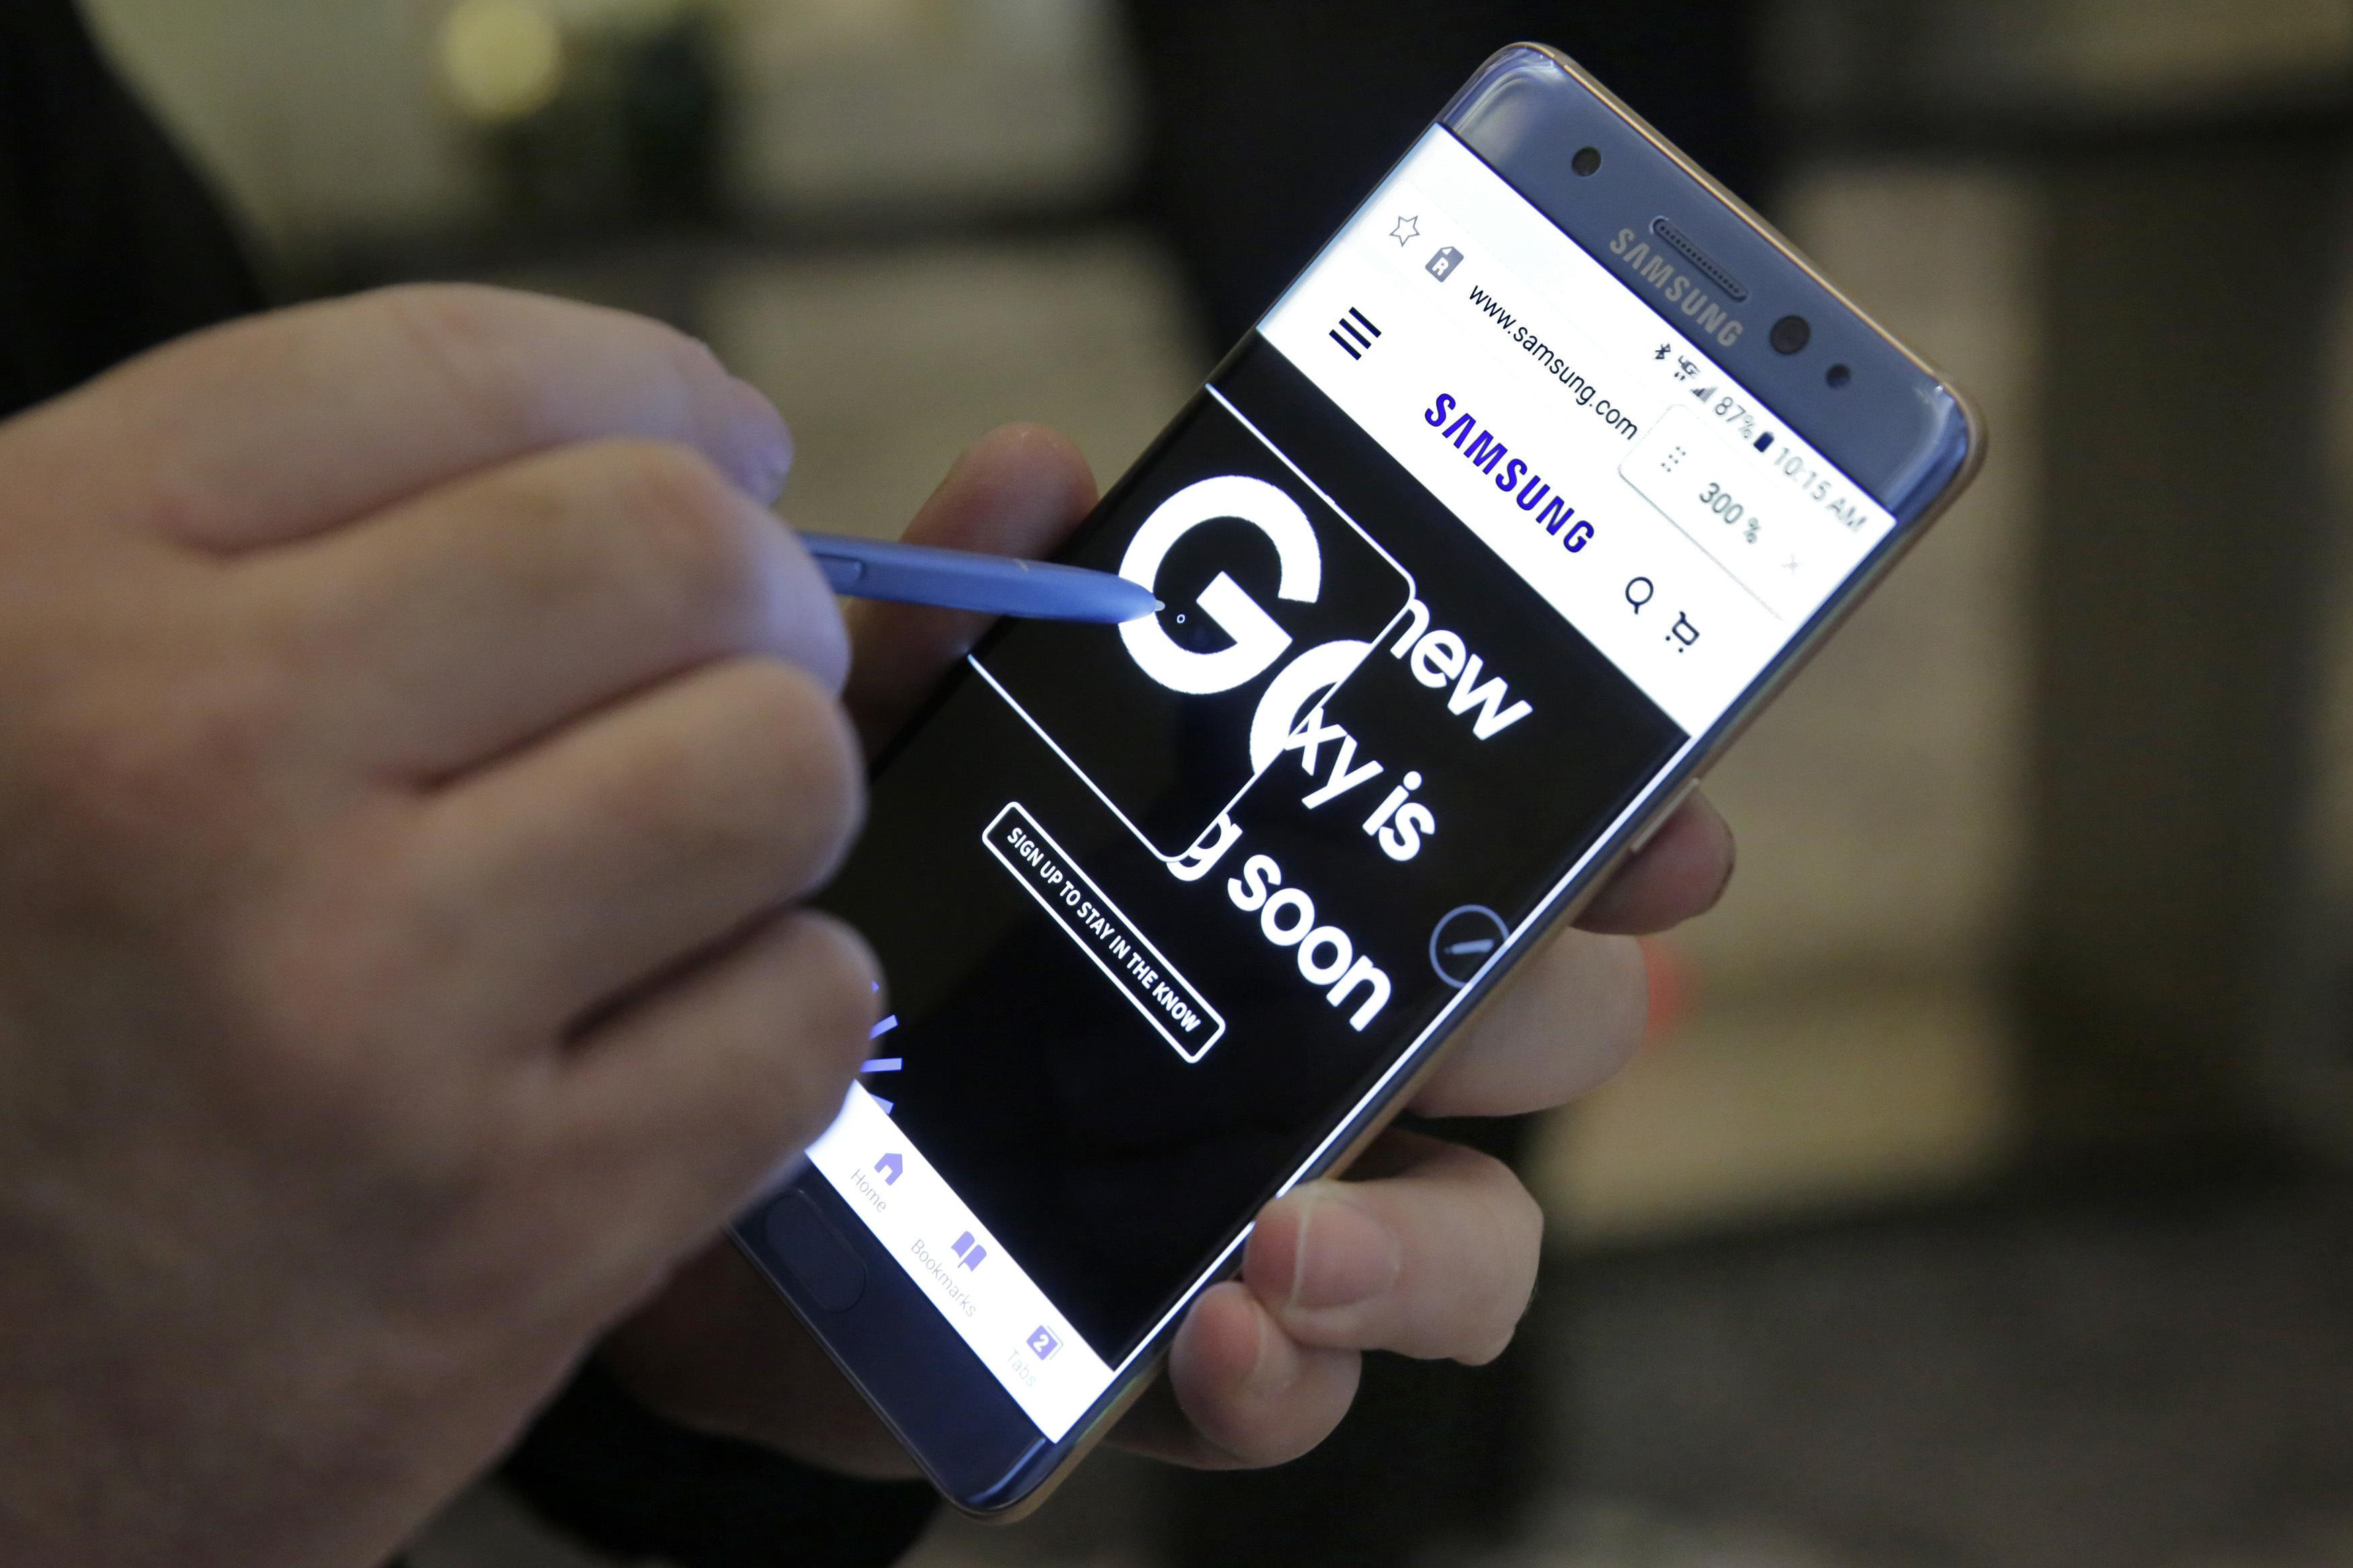 Samsung says 3 reports of China phone battery fire